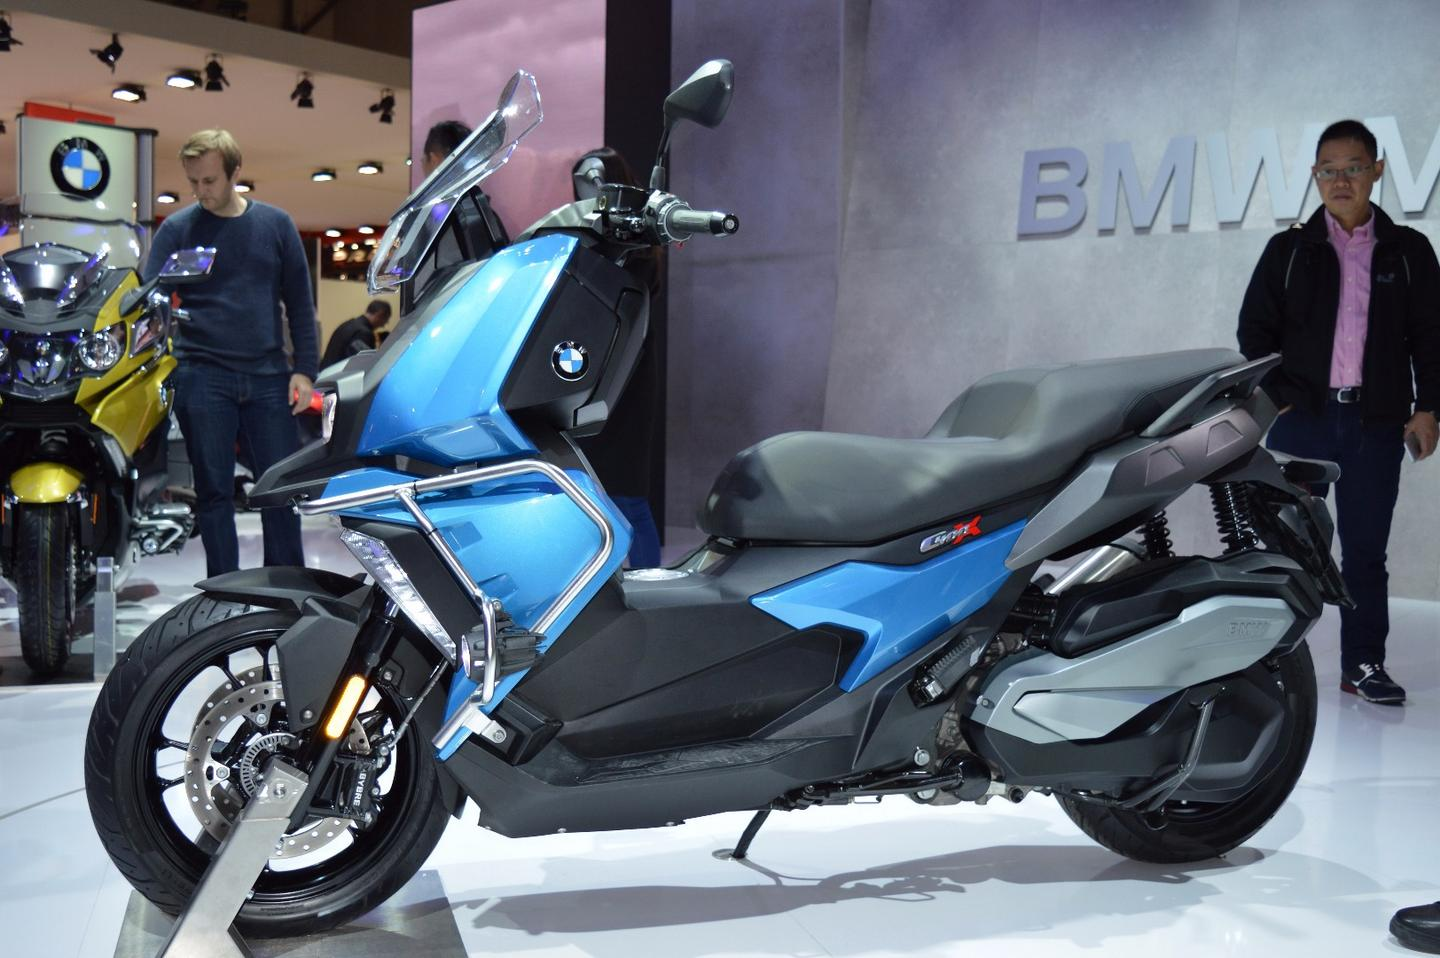 BMW's new C400X mid-size was unveiled at EICMA 2017